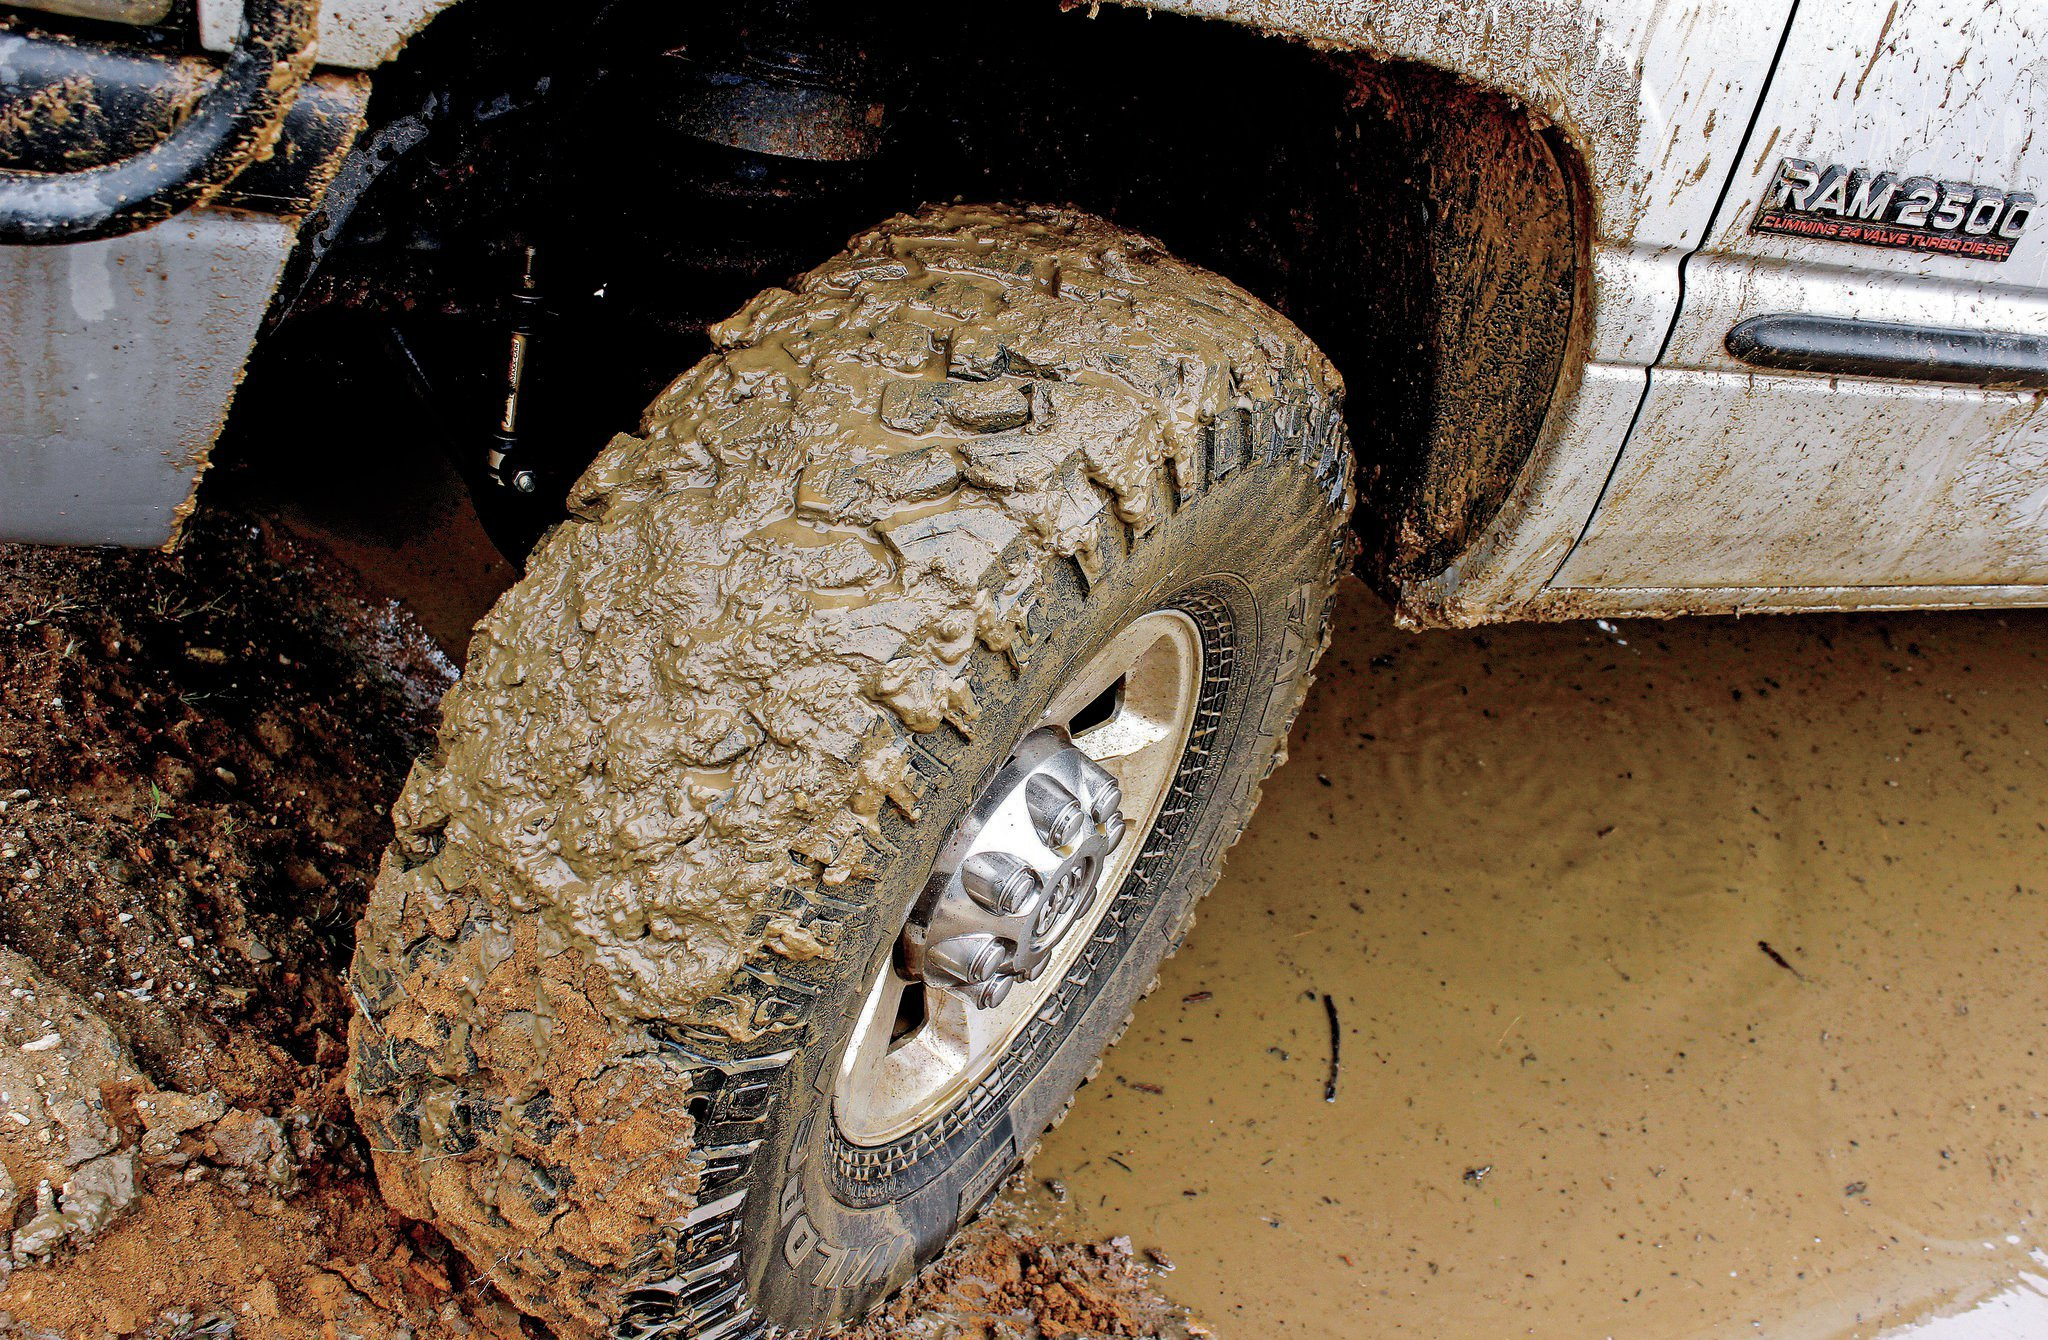 When testing off-road tires, sometimes it can be tough to get a handle on a particular tire's capabilities compared to others, but with time logged on other brands of mud-terrains mounted on this same truck, we had a couple of good baseline comparisons to work with. When mud was on the menu, the tires depended heavily on velocity to clean out the voids, but once spinning, they always seemed to get the job done.